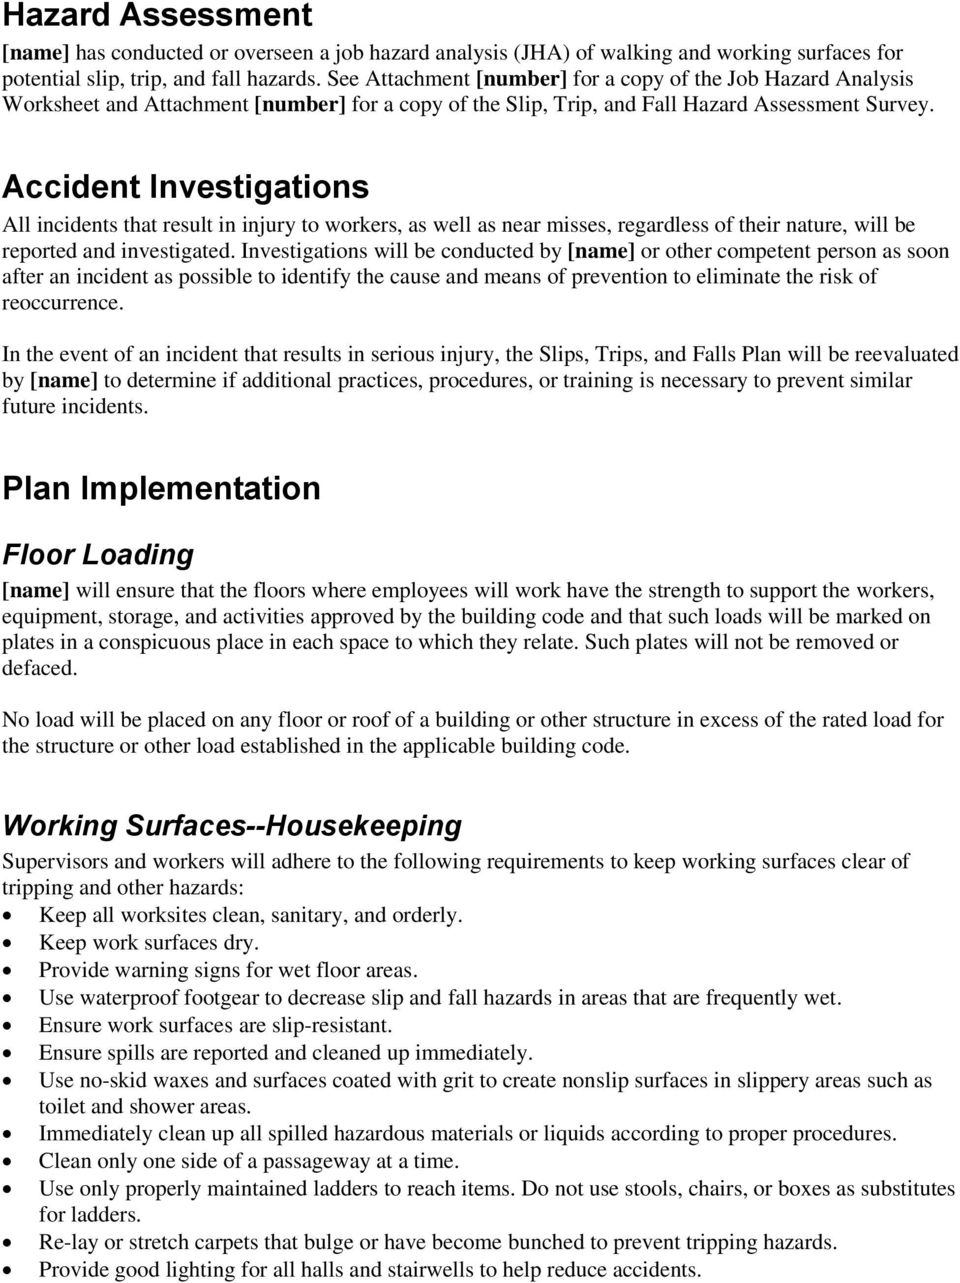 Accident Investigations All incidents that result in injury to workers, as well as near misses, regardless of their nature, will be reported and investigated.